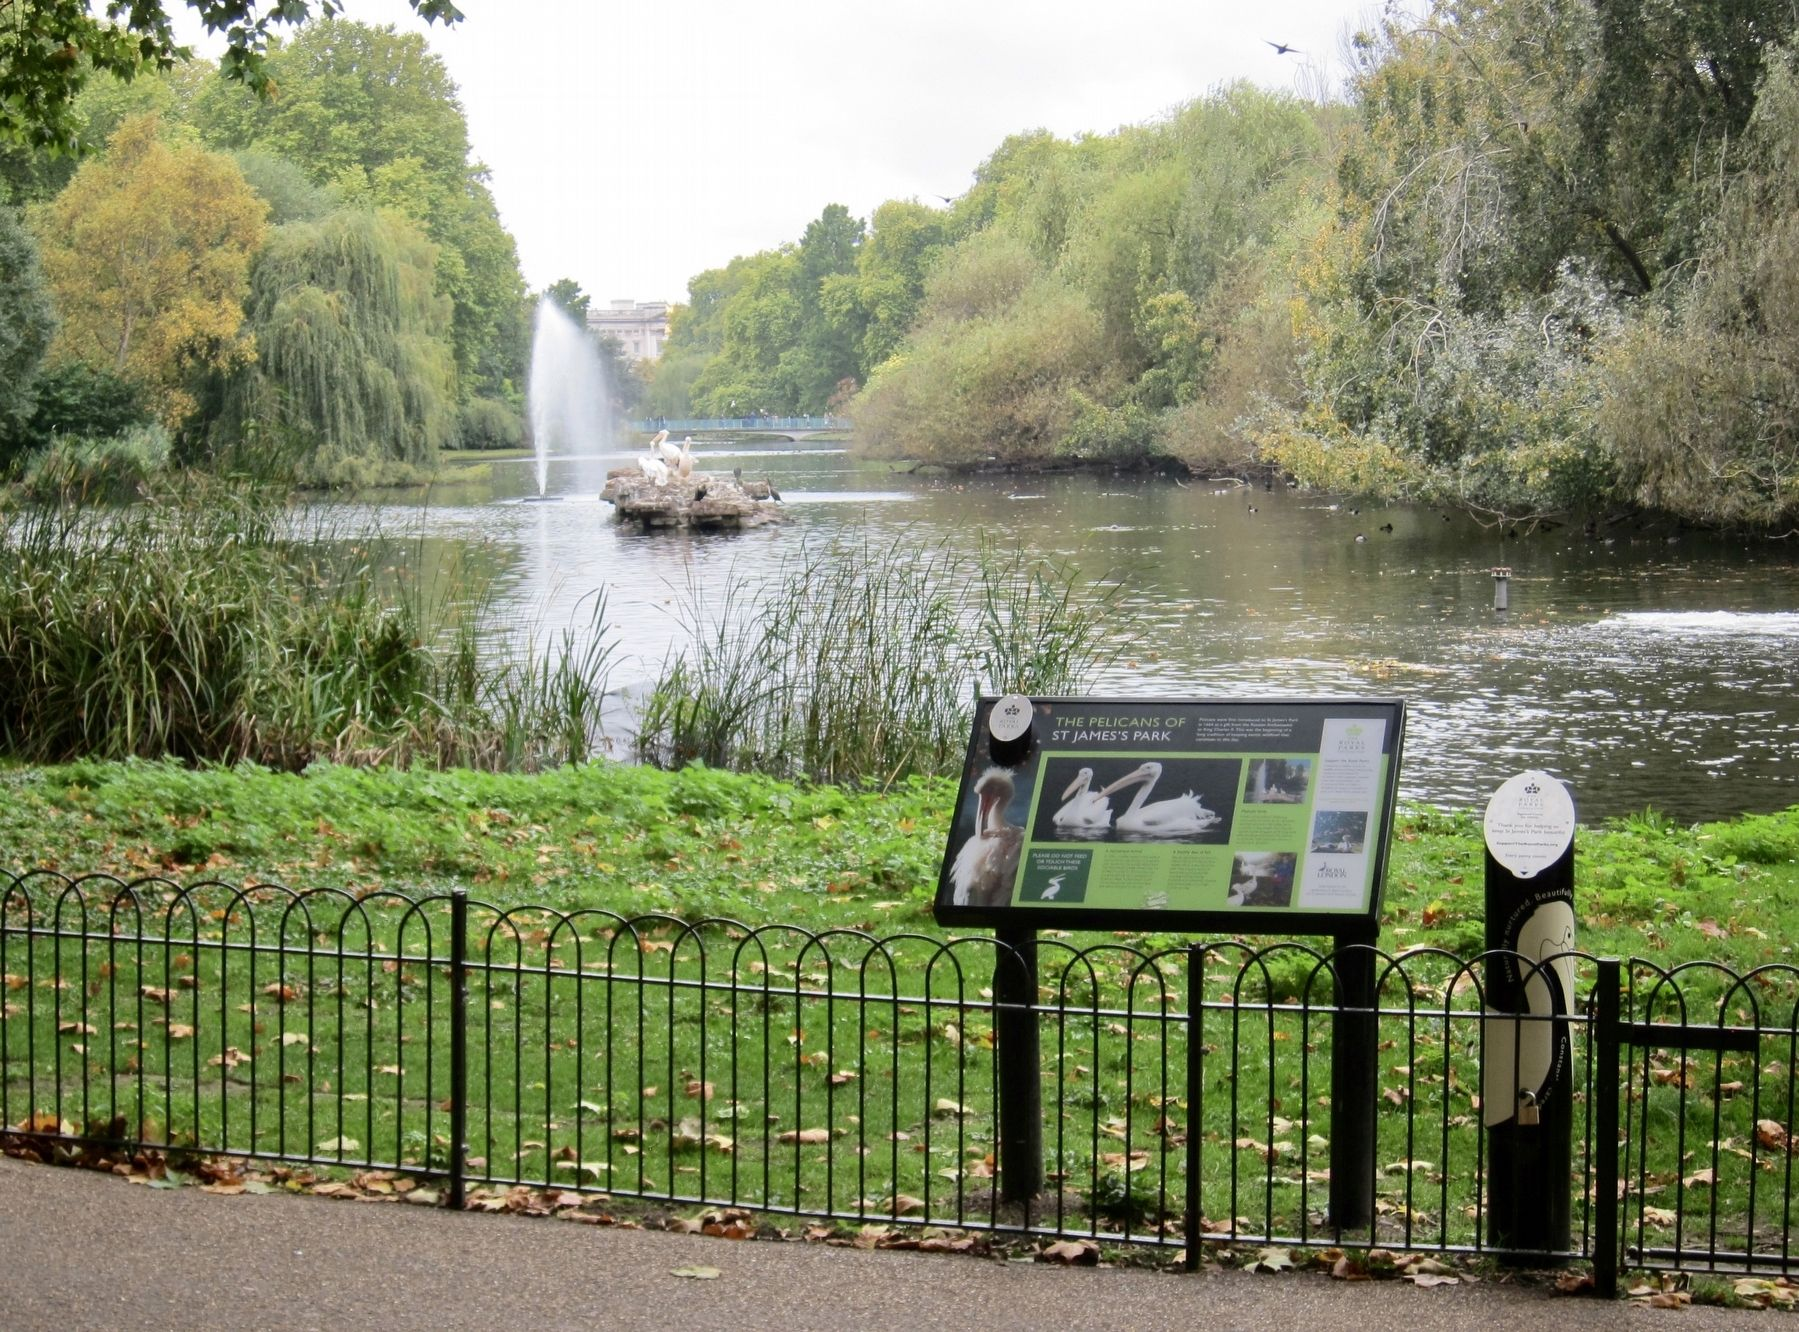 The Pelicans of St Jame's Park Marker - Wide View image. Click for full size.